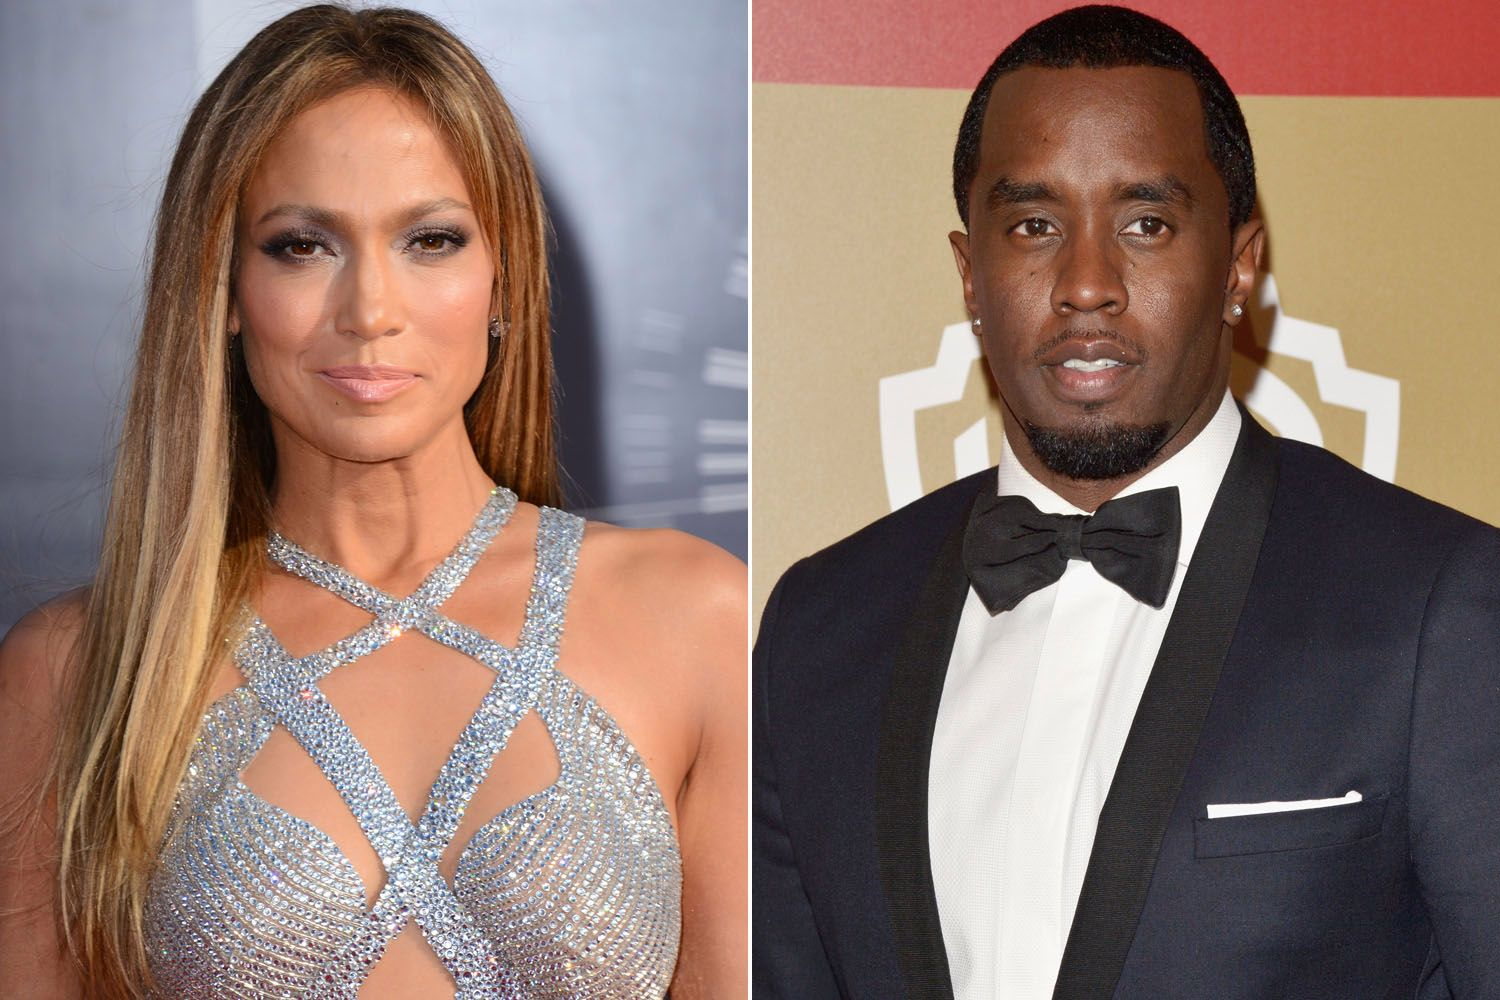 diddy-seemingly-mocks-jennifer-lopezs-ben-affleck-reunion-by-looking-back-at-his-own-romance-with-her